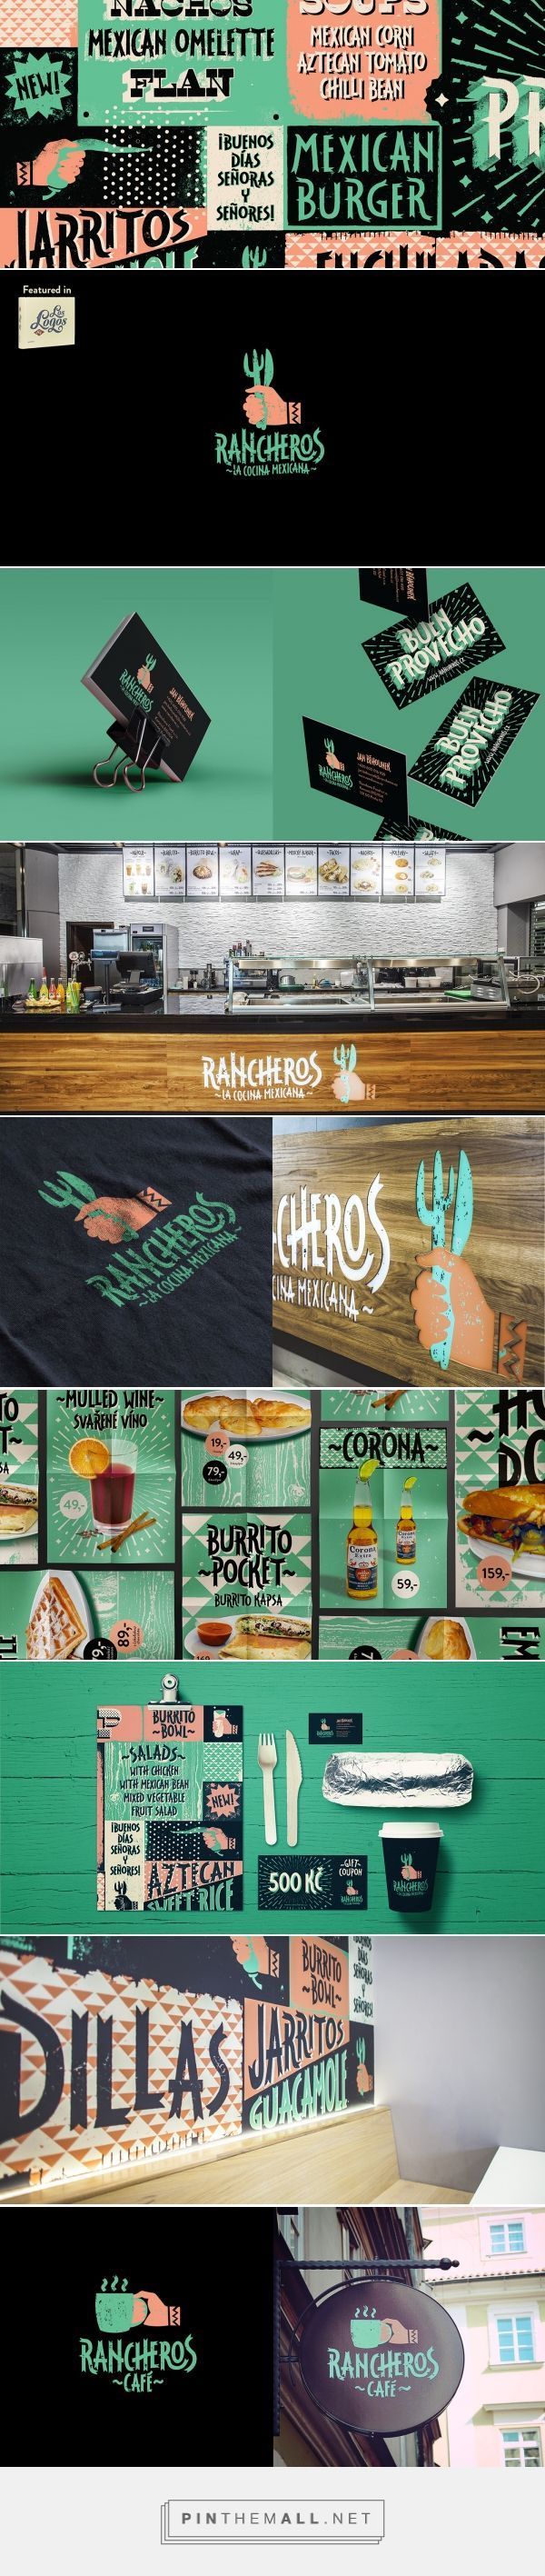 Rancheros Mexican Fast Food Restaurant Branding by Honza Moucha | Fivestar Branding Agency – Design and Branding Agency & Curated Inspiration Gallery